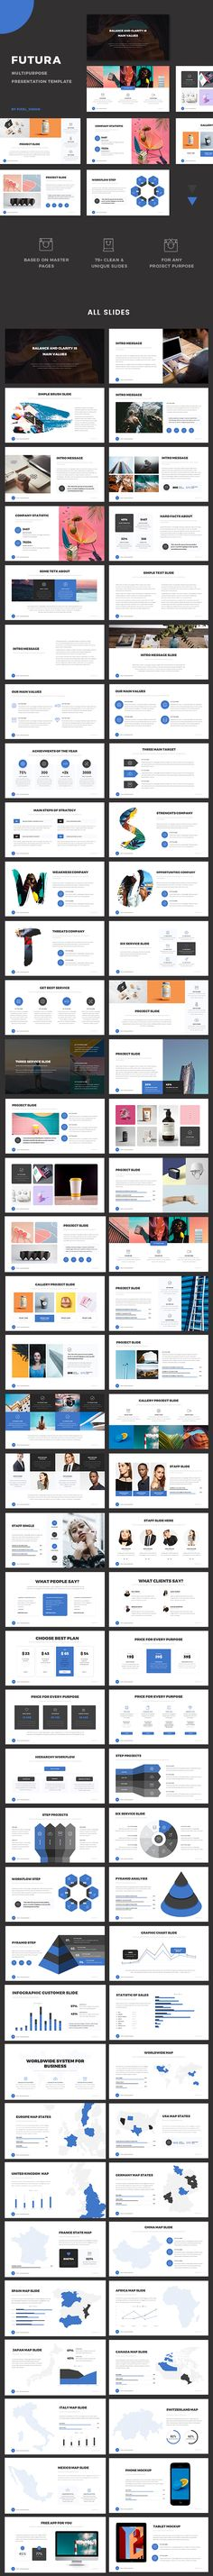 530 Best Powerpoint Templates images in 2018 | Powerpoint charts